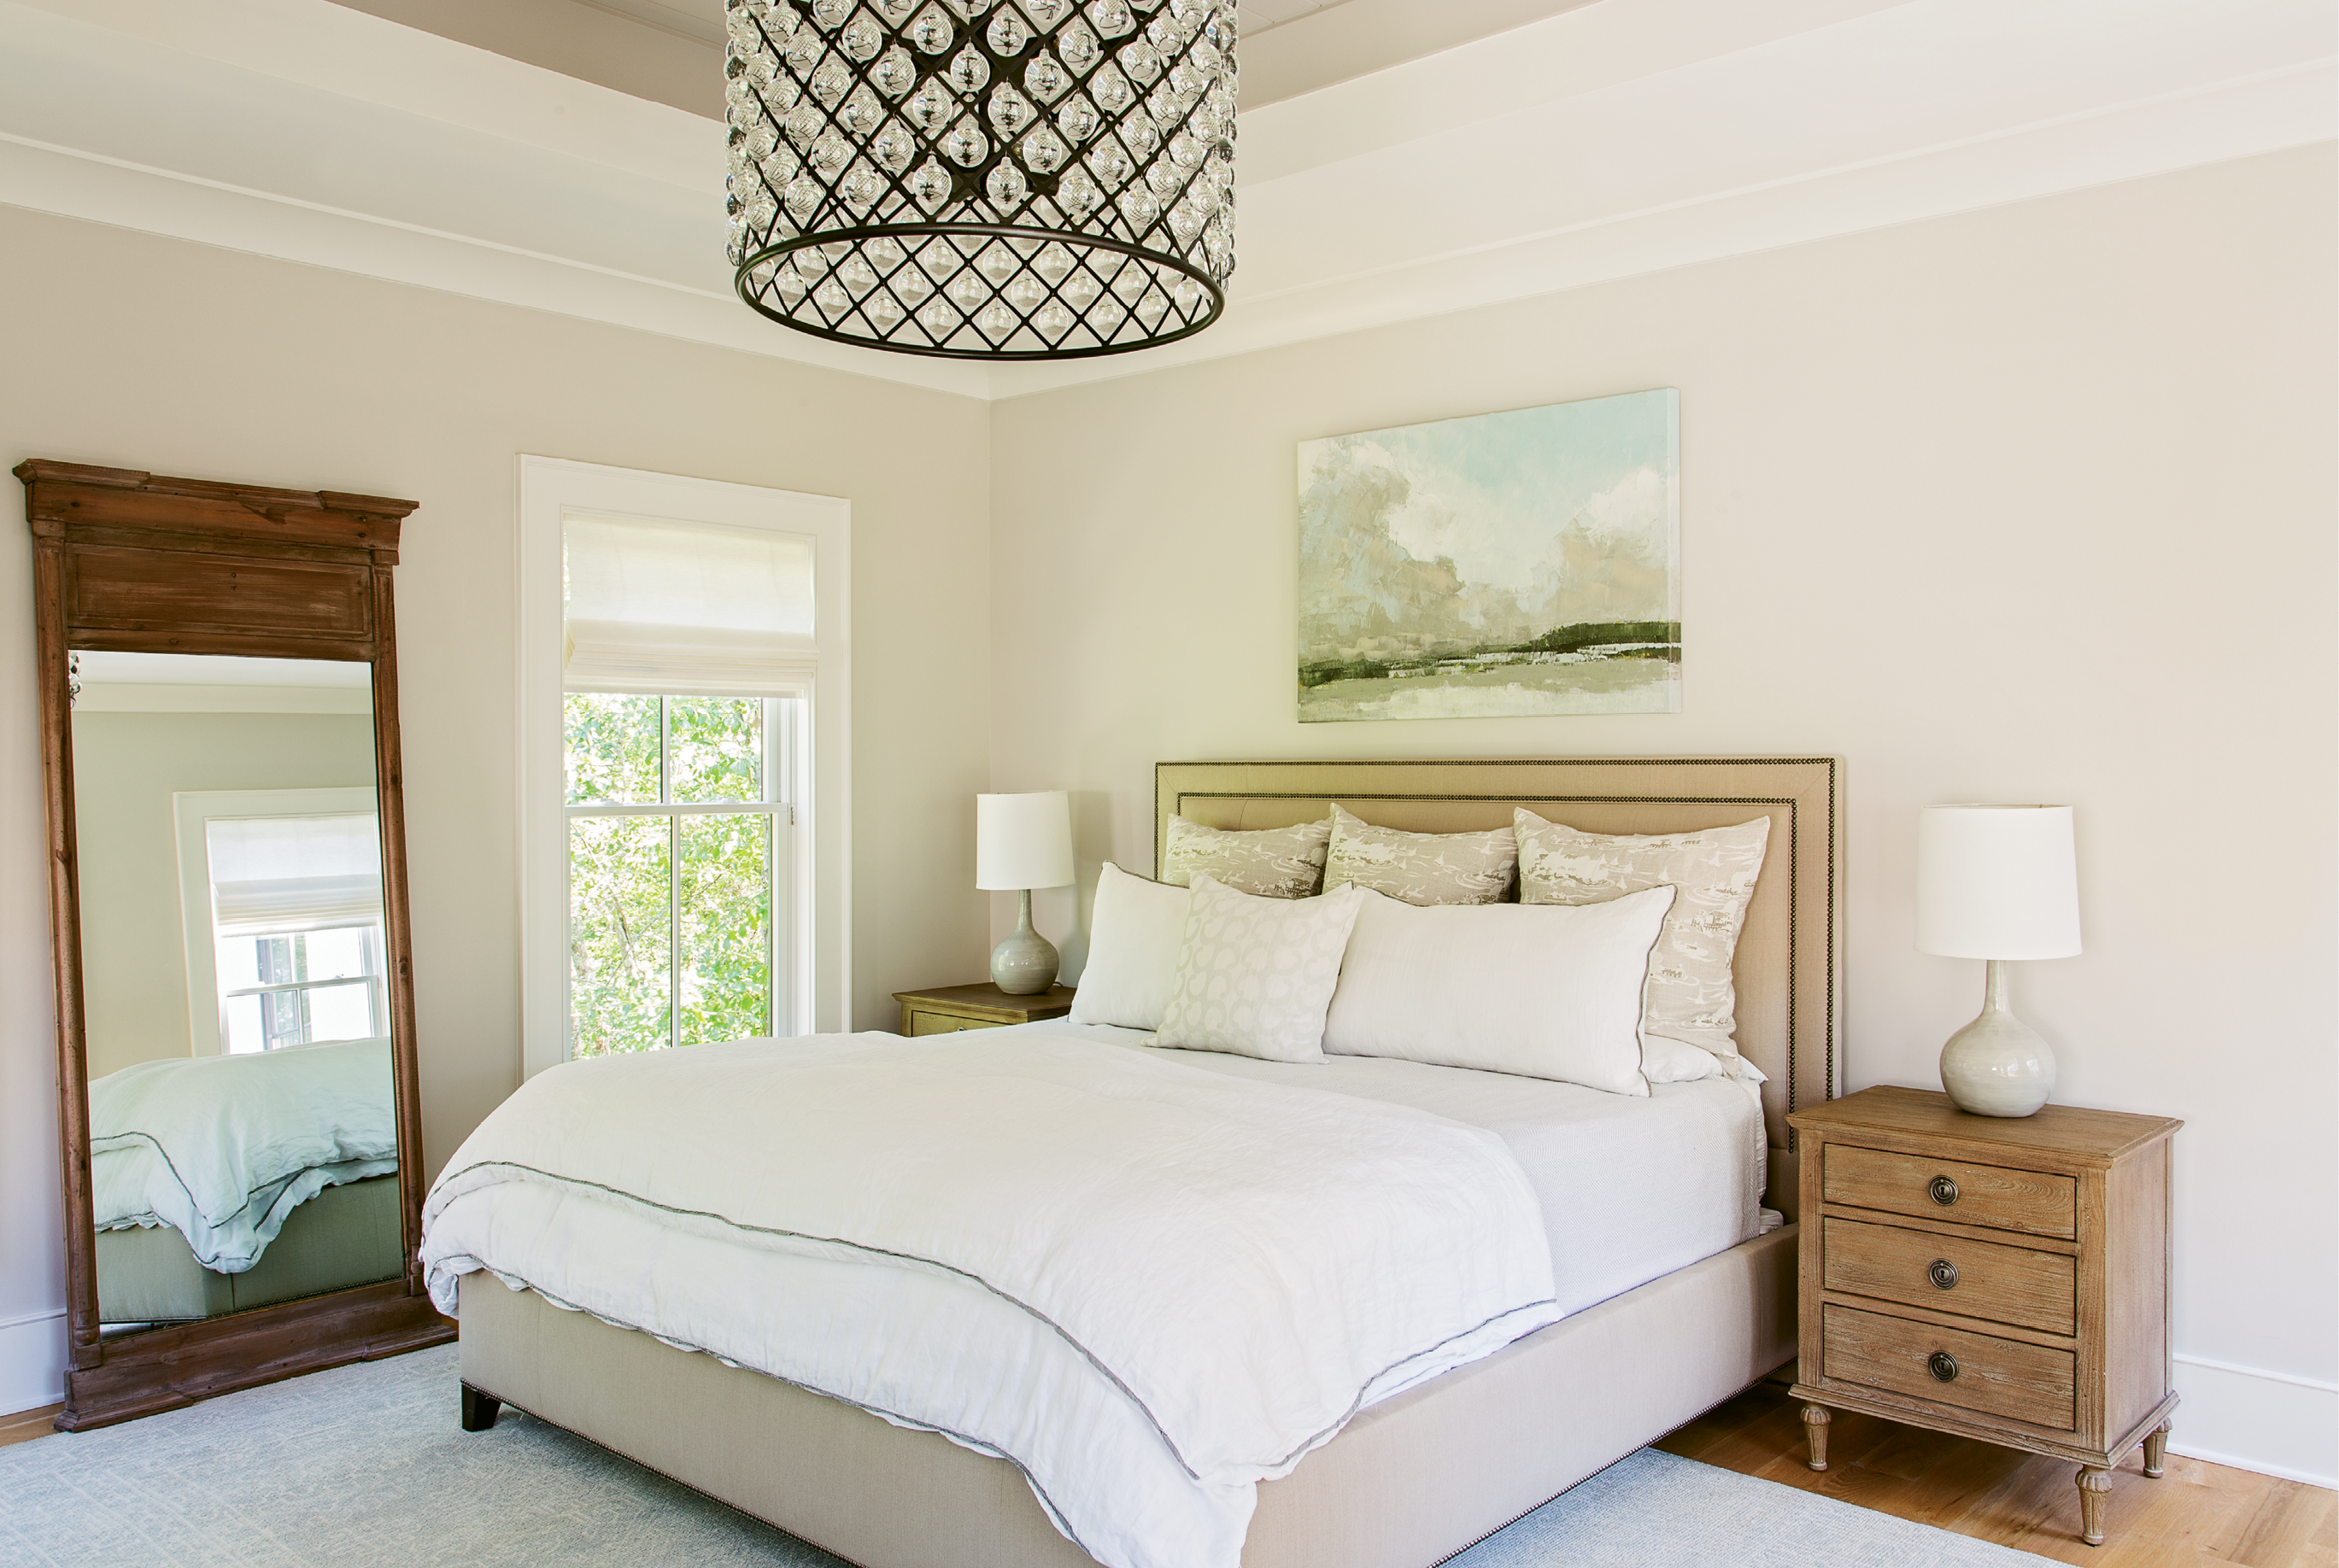 """Dreamy Drama: """"It's my favorite thing in the house,"""" says Theresa of the big, dramatic light fixture in the master bedroom, a constellation of mini-globes reflecting light in dazzling gentleness. """"Keeping the décor neutral and simple allows for going big and making statements with the light fixtures,"""" notes Lenox."""